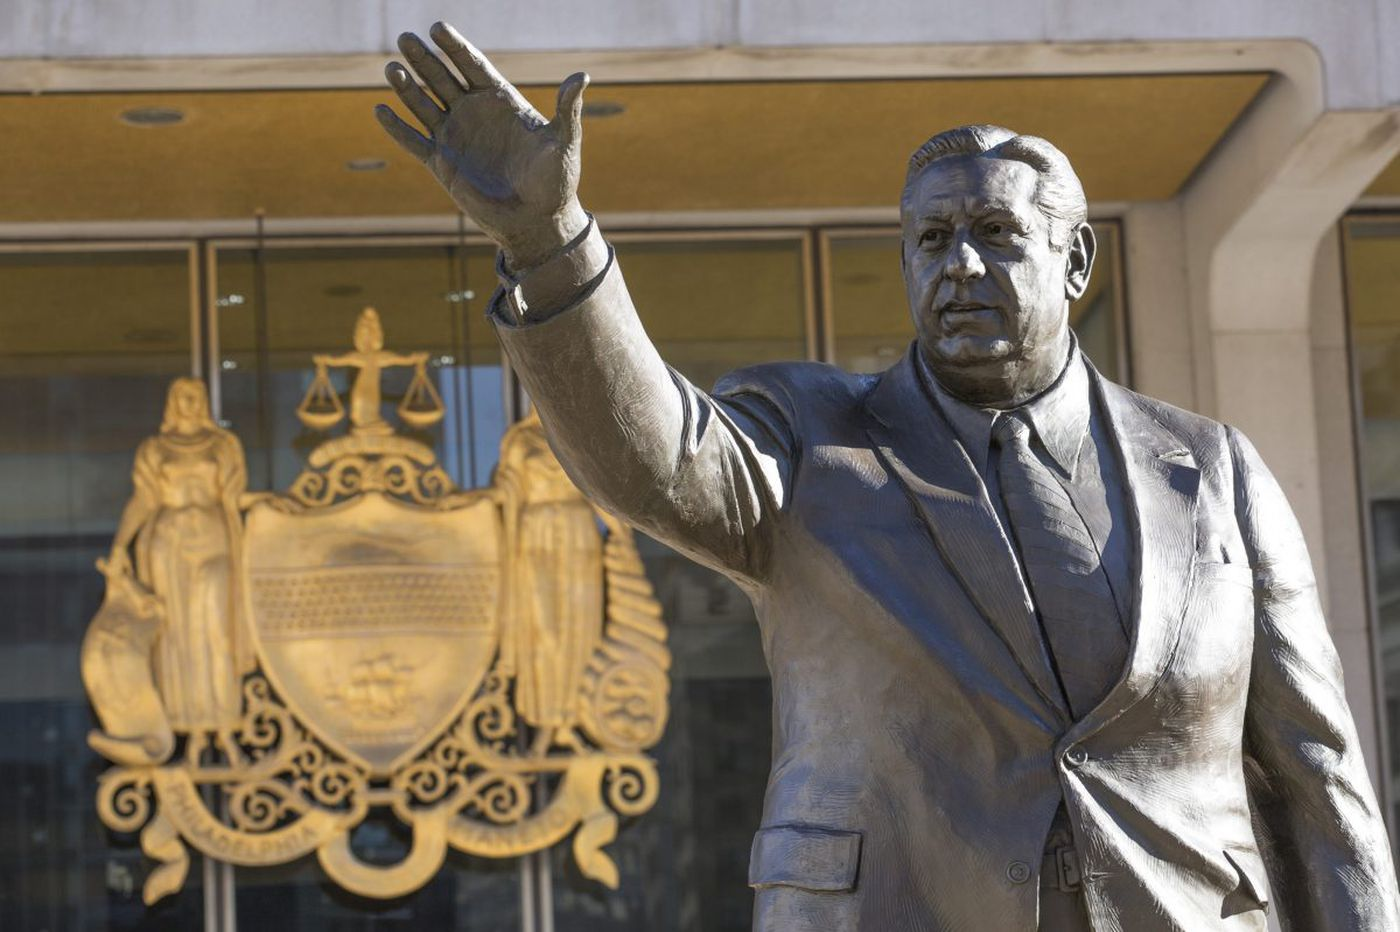 Take down Rizzo statue? Fine, but don't stop there